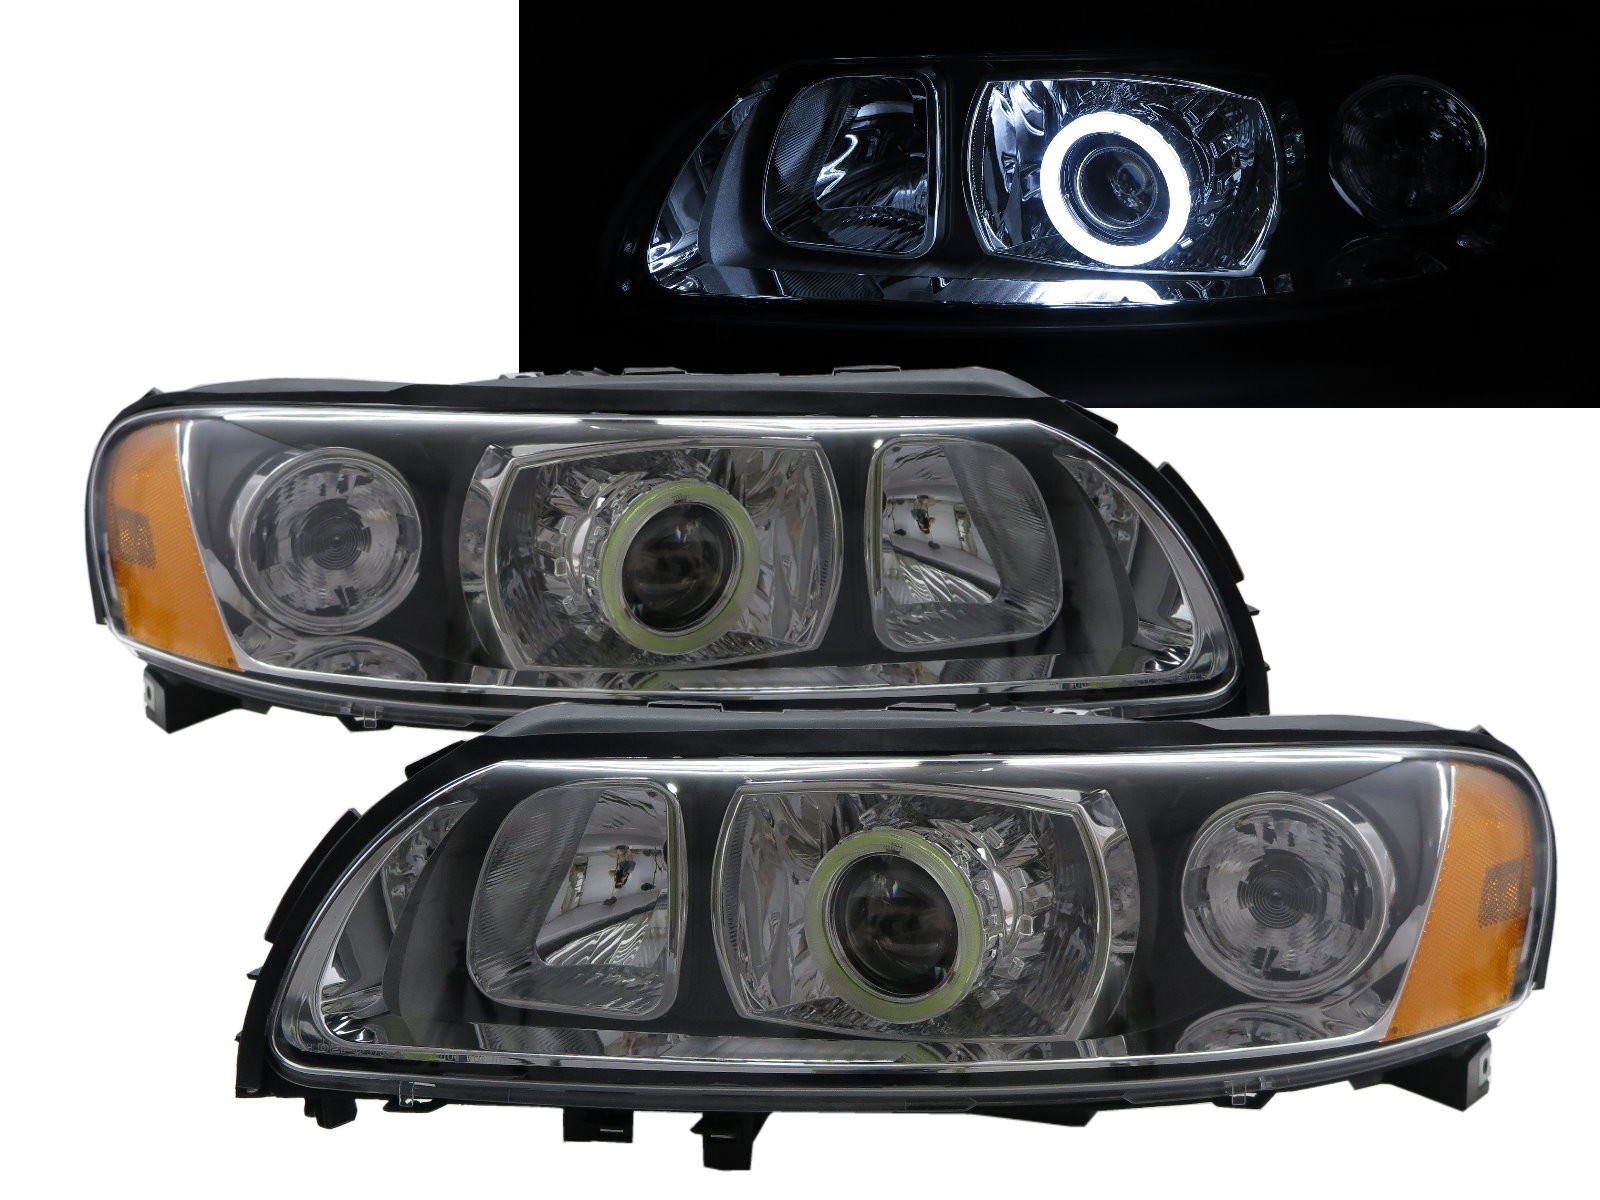 Crazythe V70 Xc70 Second Generation 2004 2007 Wagon 5d Cob Projector Headlight Headlamp Black